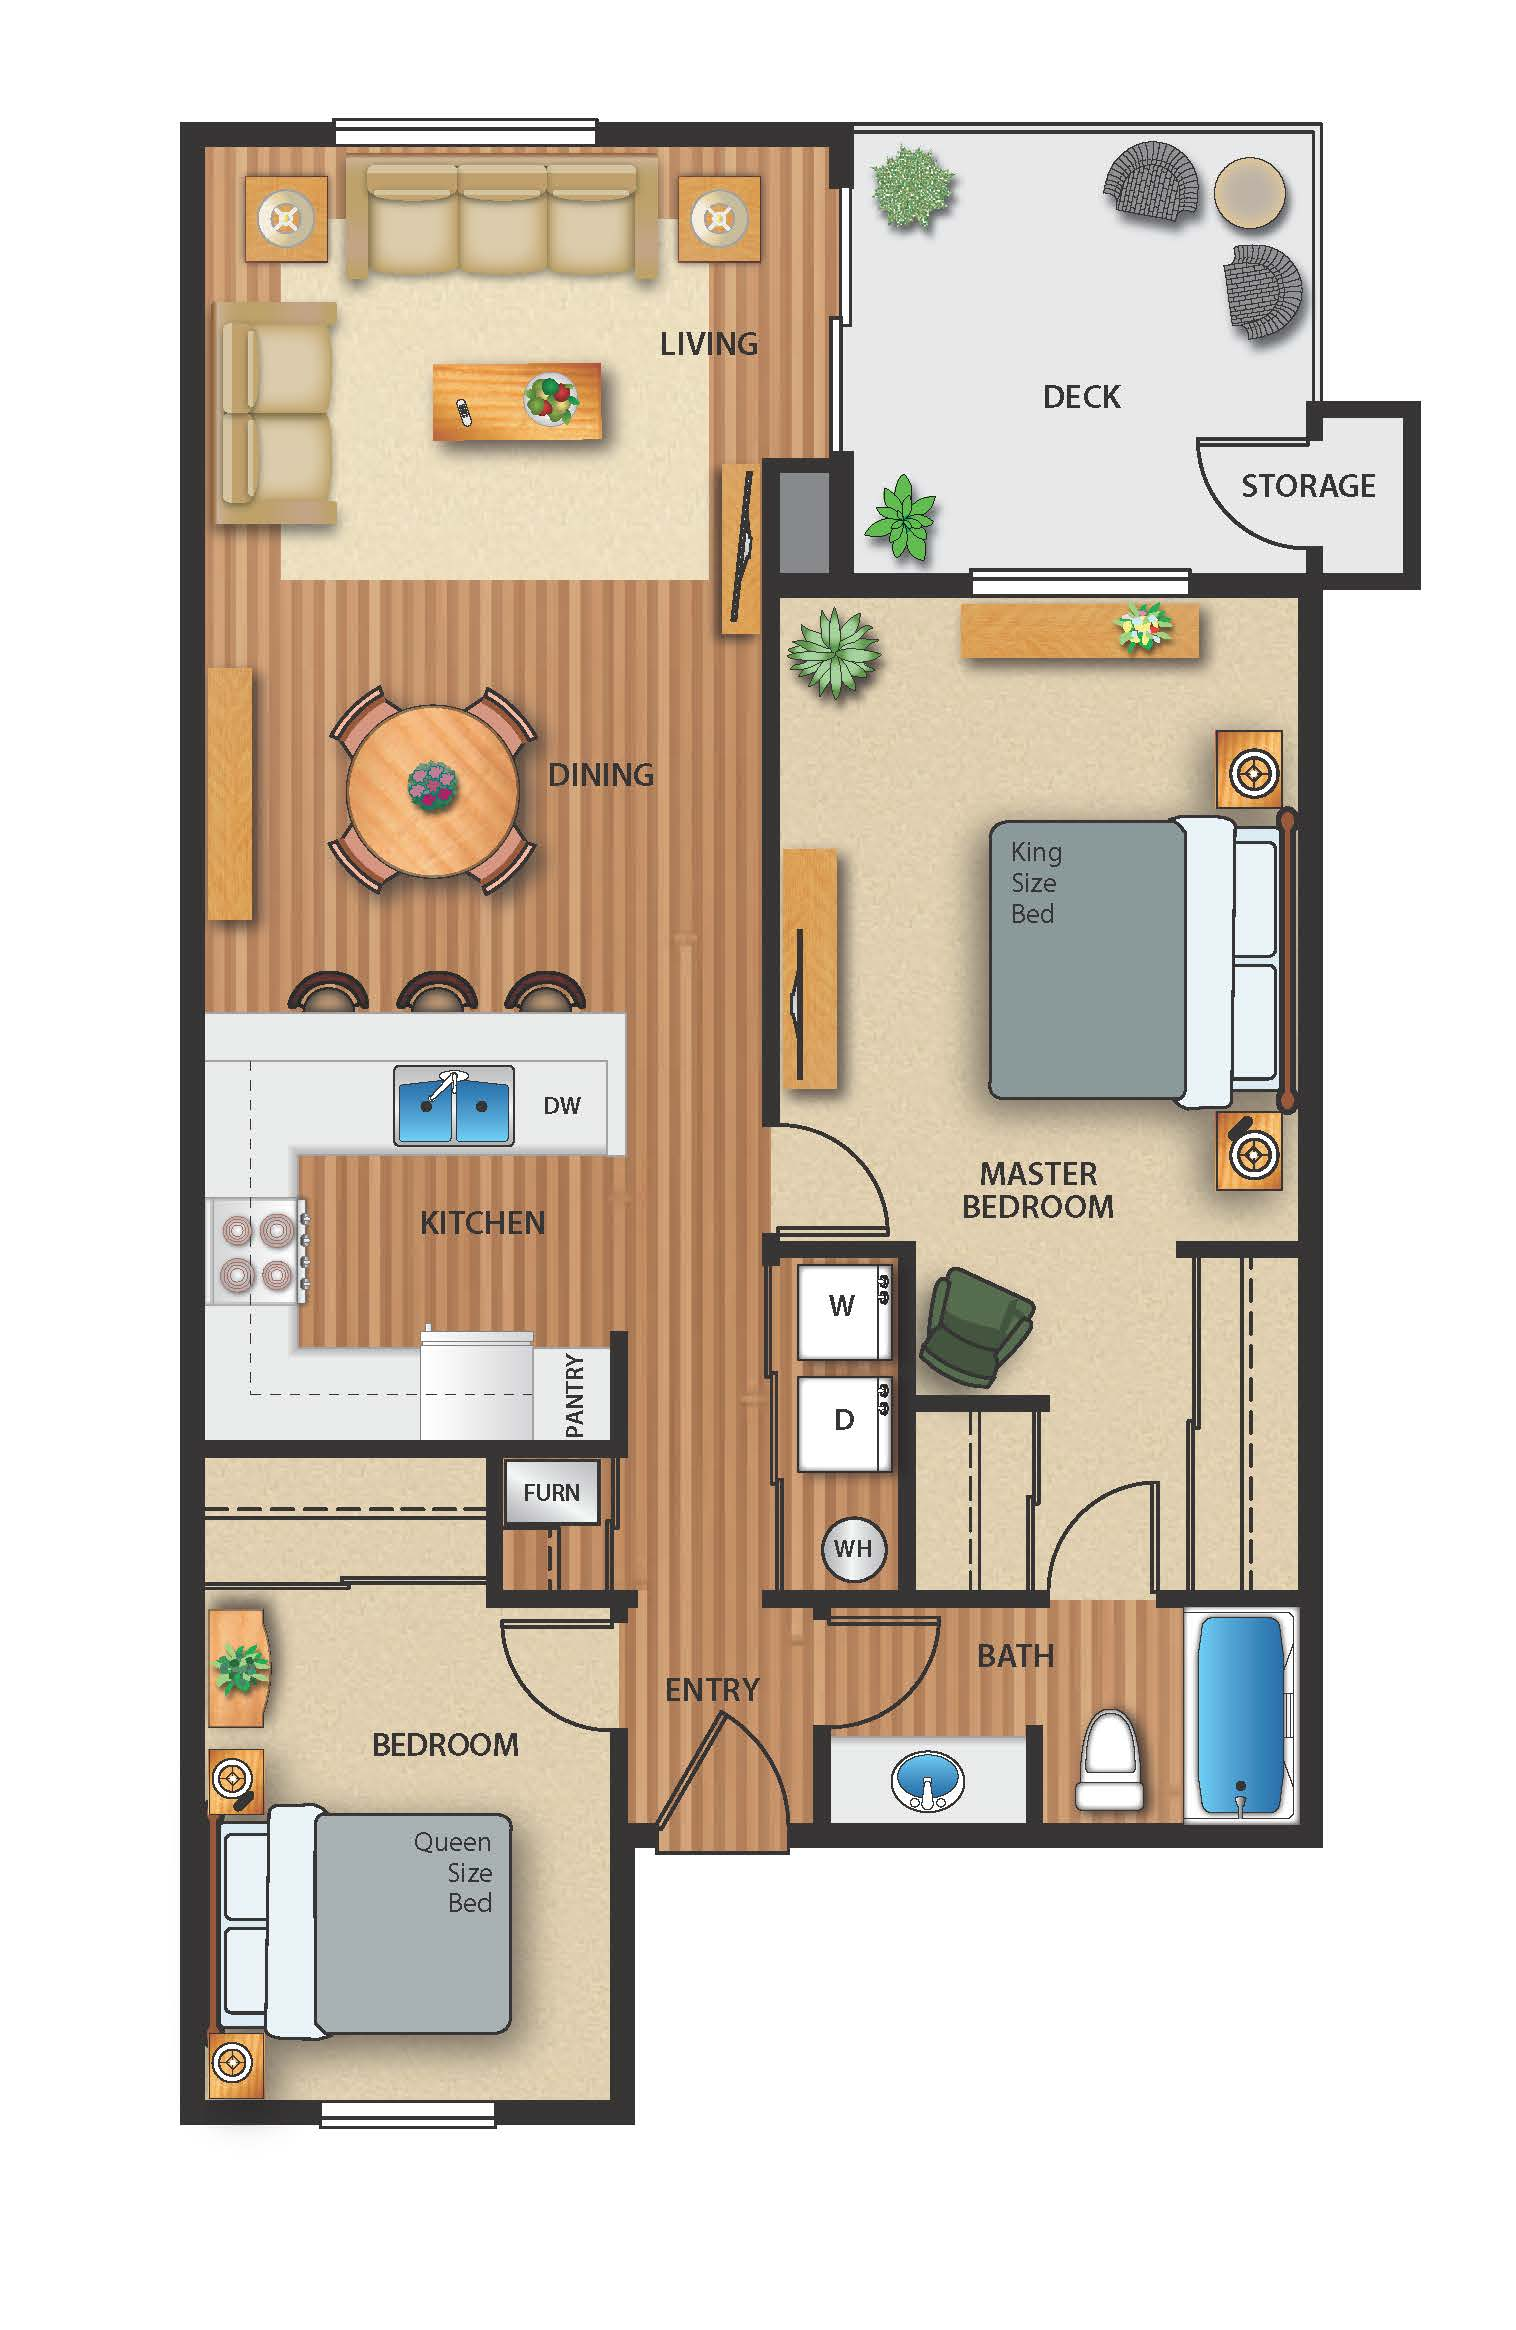 Floor plan image of 2 Bed 1 Bath River View